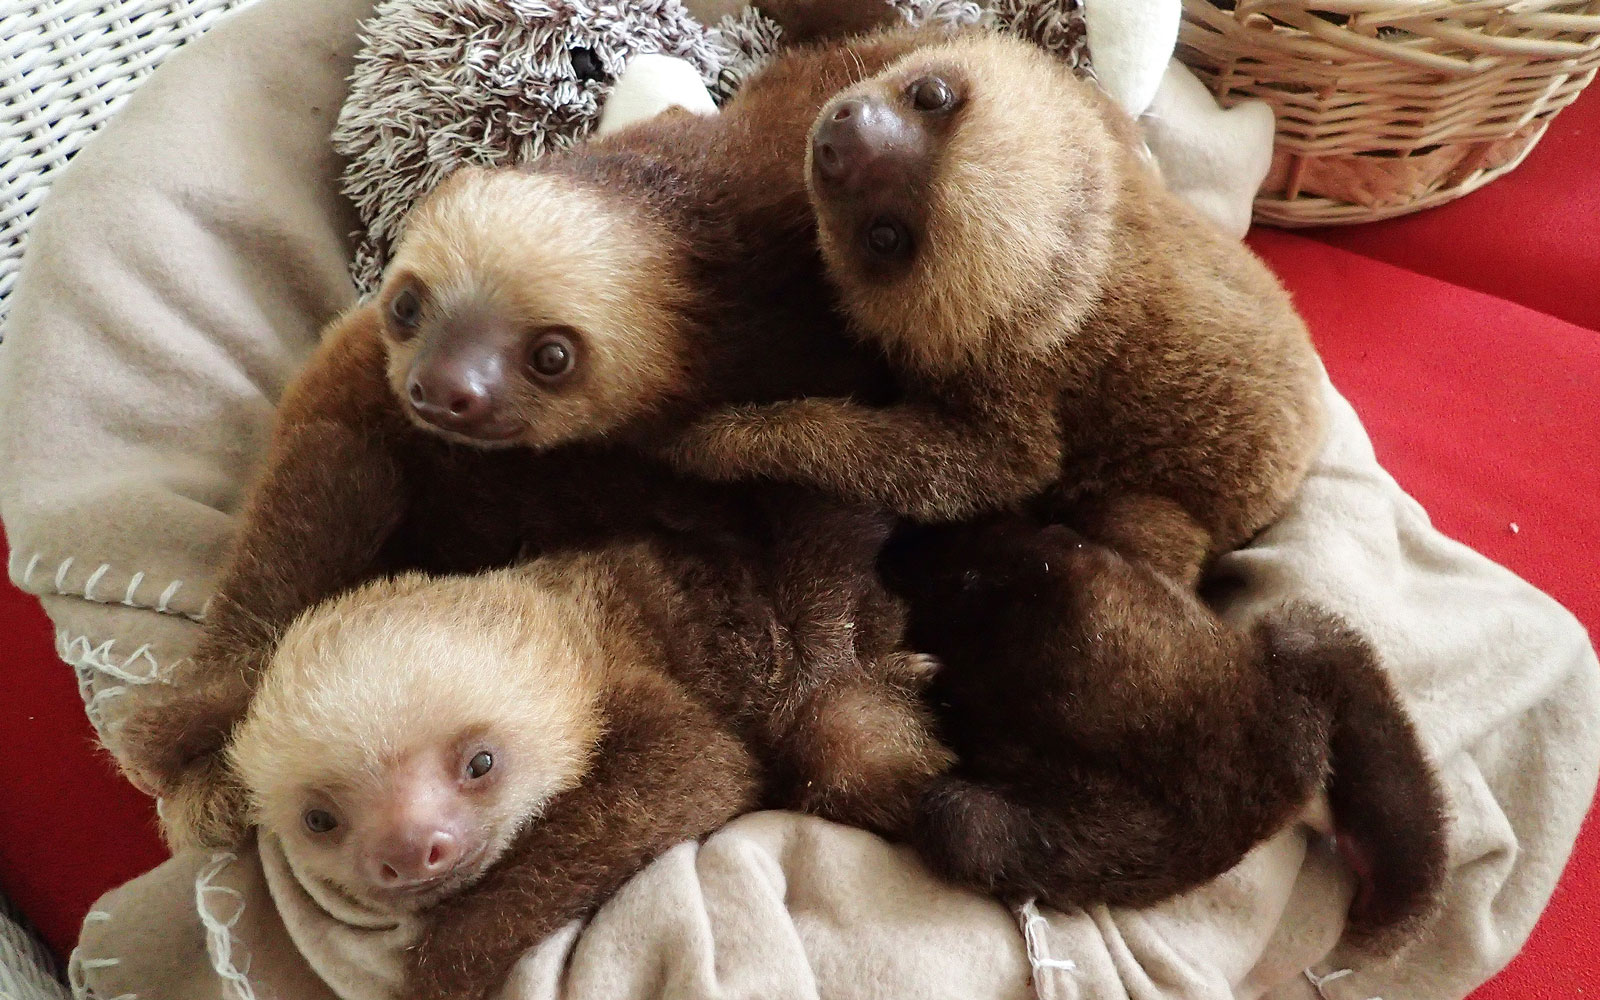 Six Adorable Rescue Sloths From Panama Just Arrived at the Indianapolis Zoo